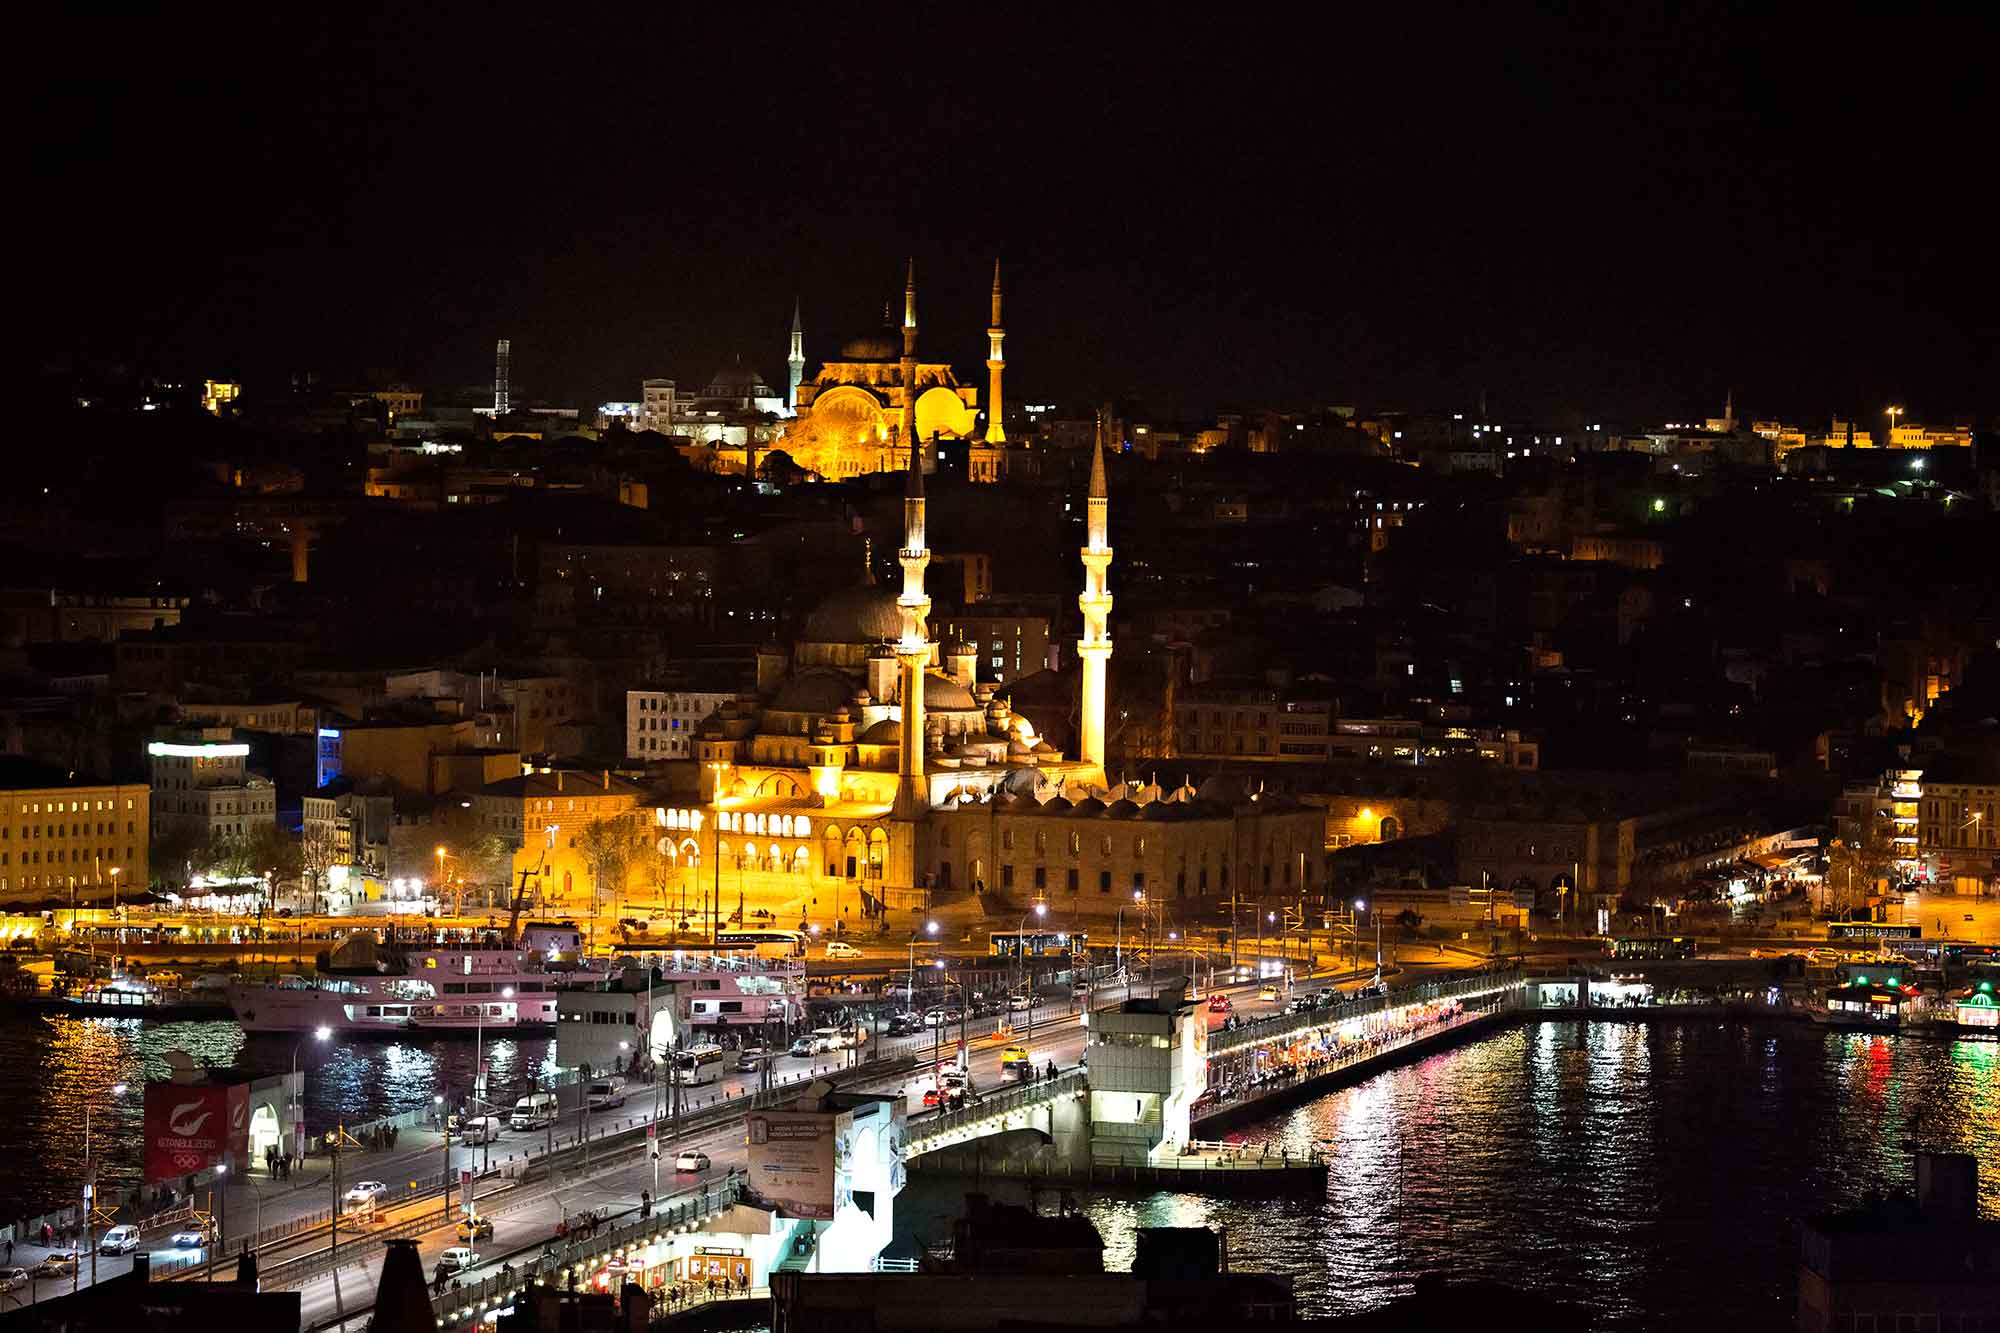 Istanbul's skyline at night. © Ulli Maier & Nisa Maier